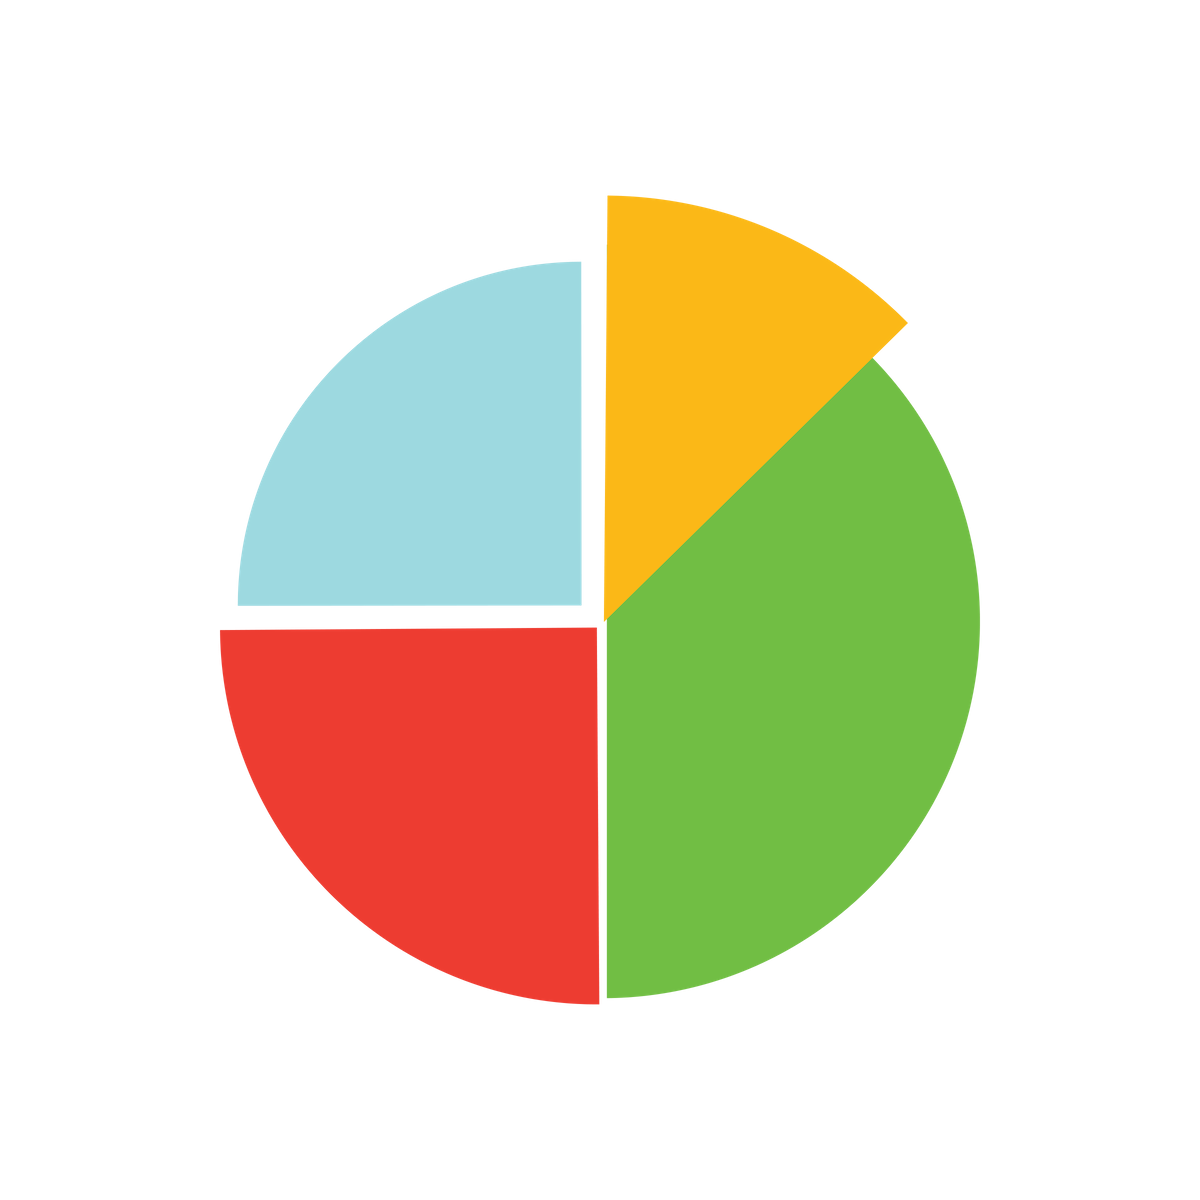 pie chart_solid.png